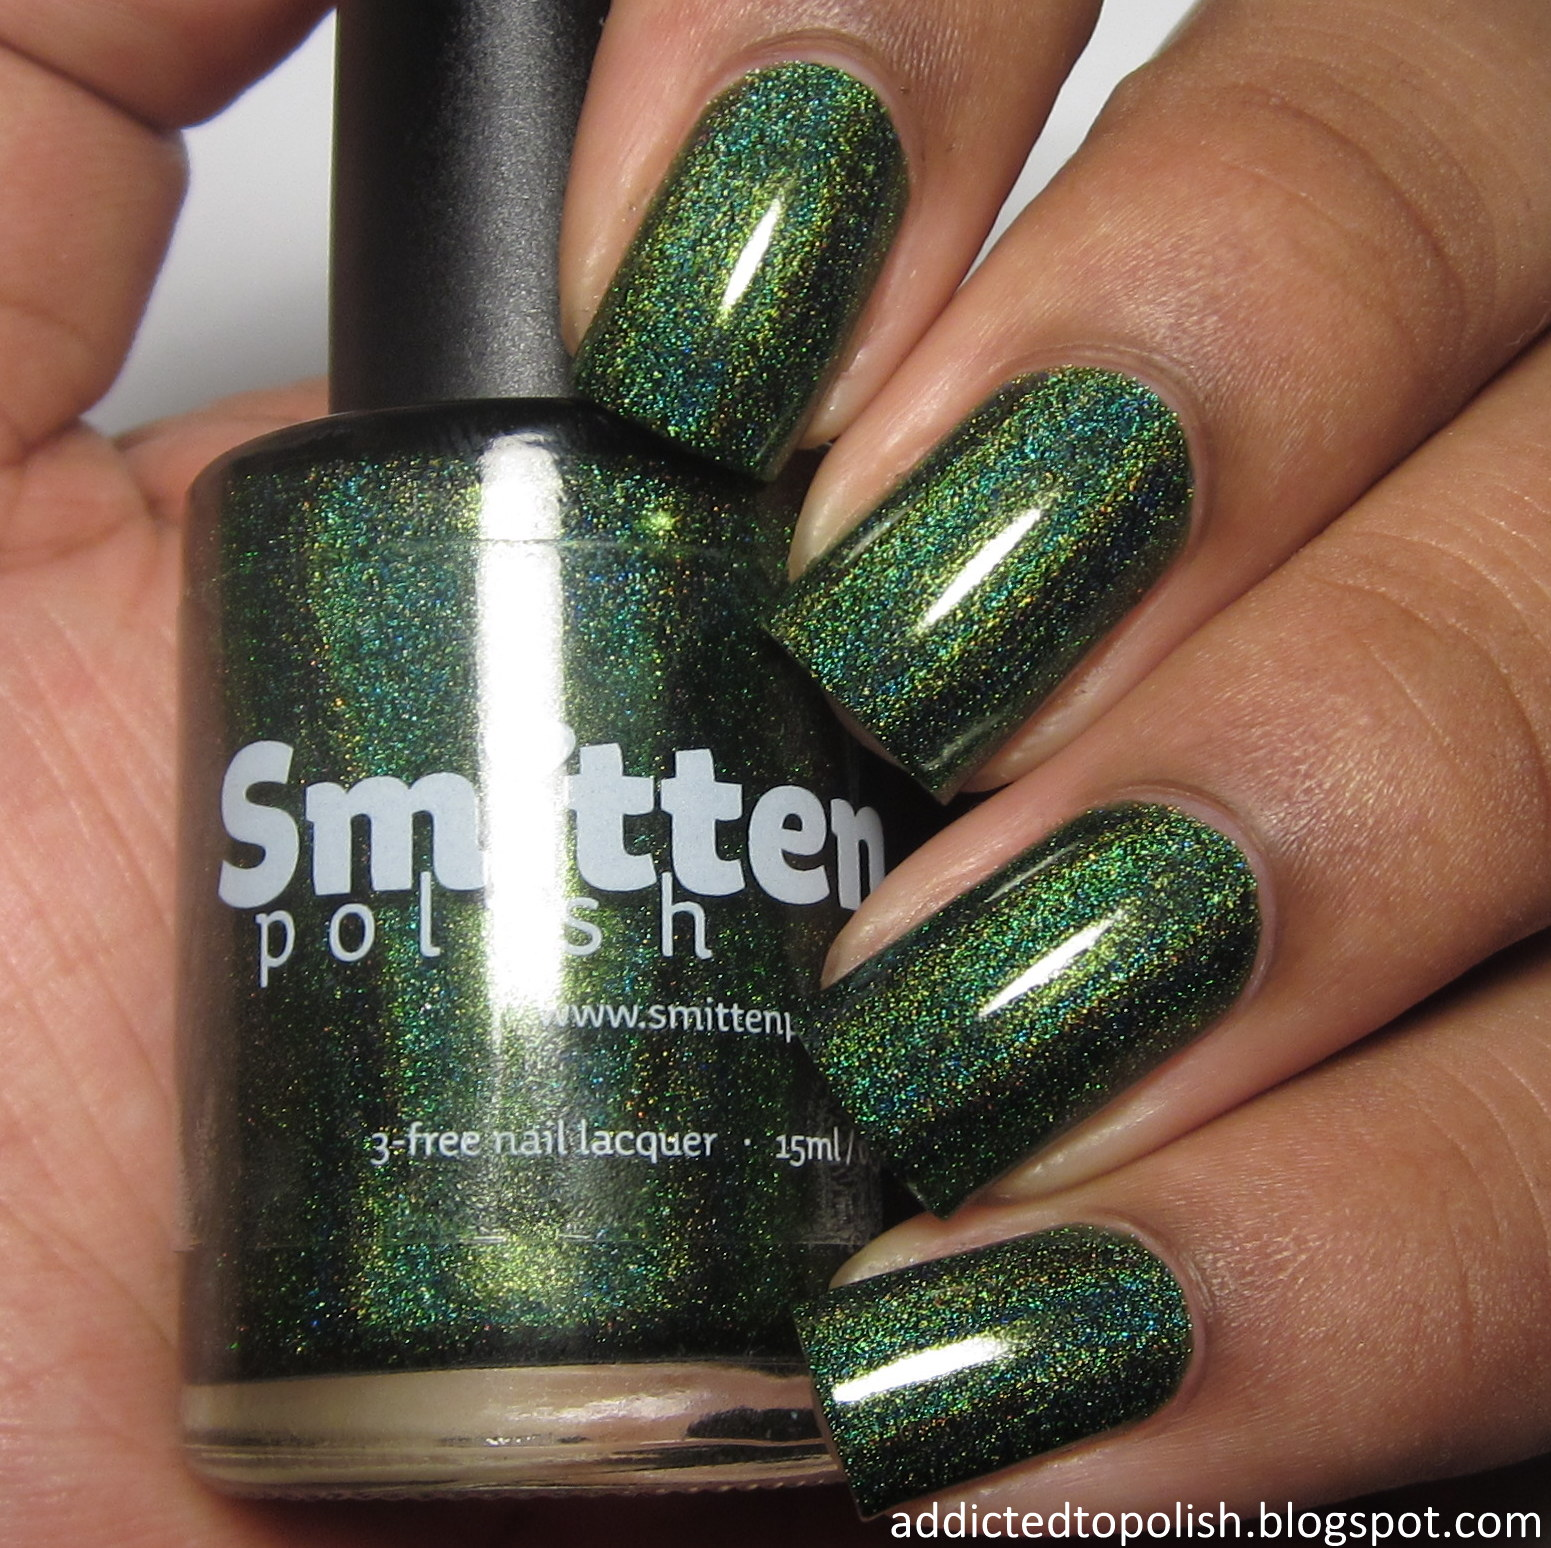 smitten polish between the baubles